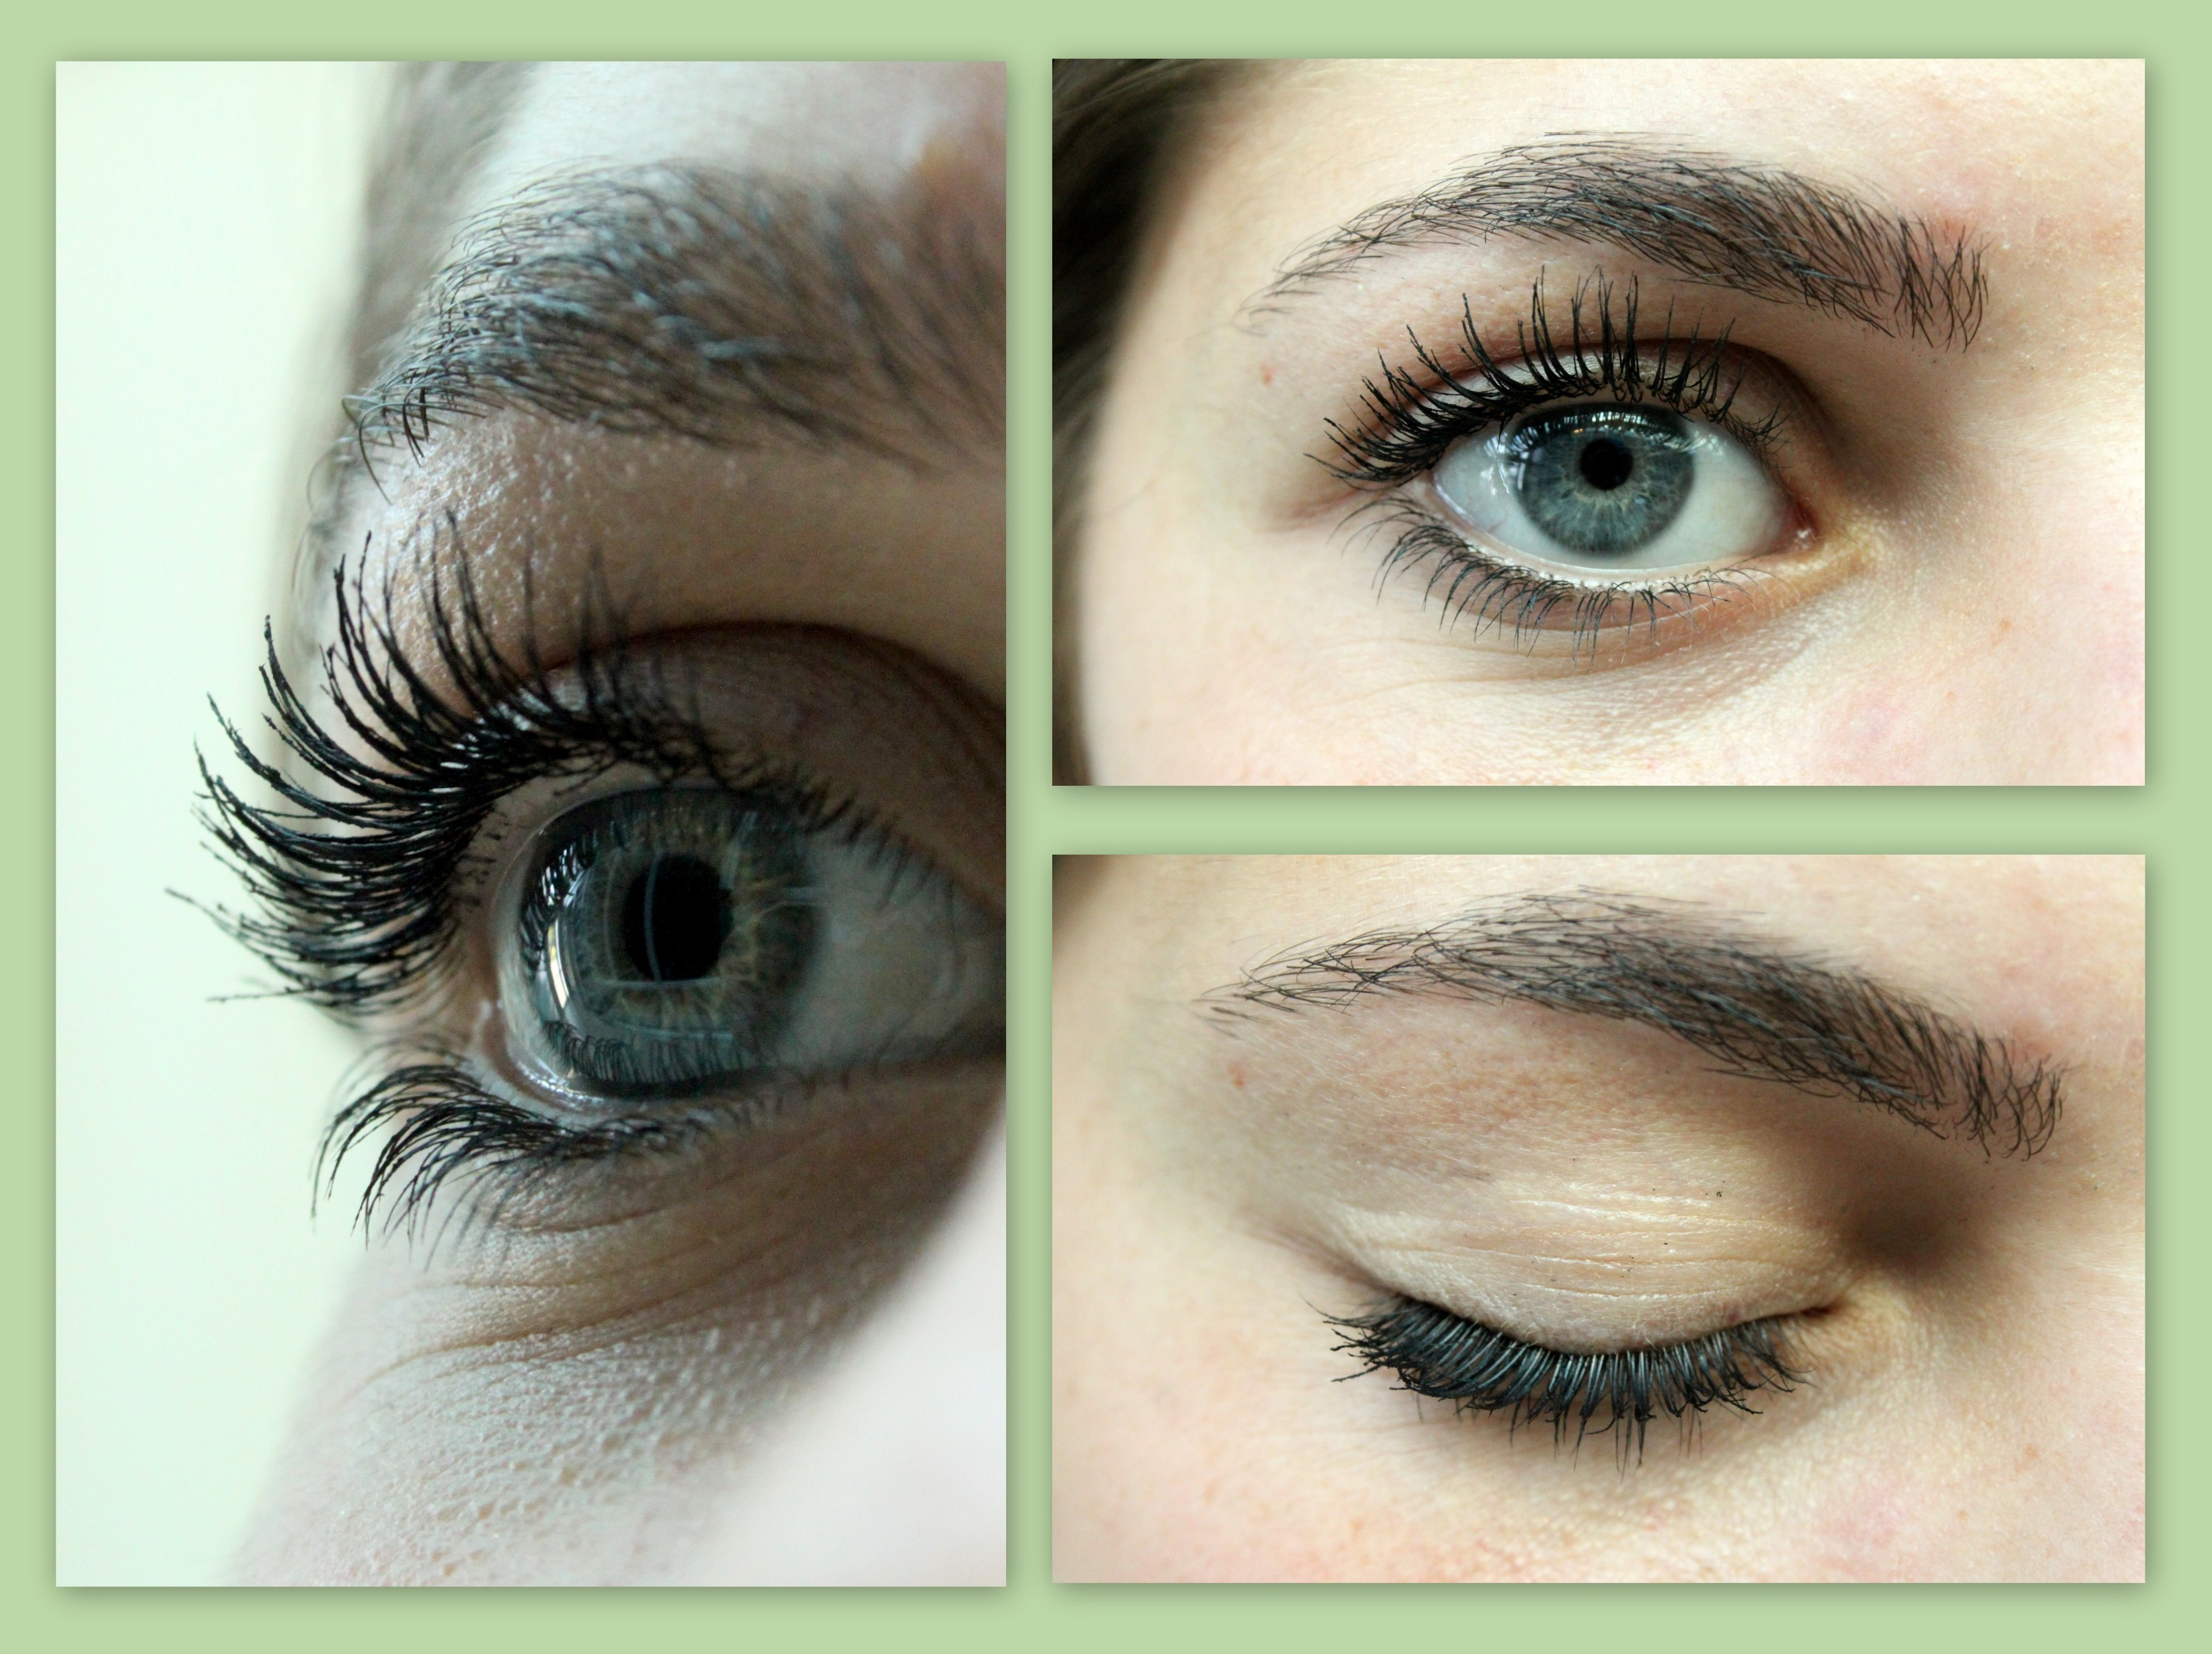 61534812e8e Review: The Falsies Mascara (Maybelline New York) | Make Up Your Mind